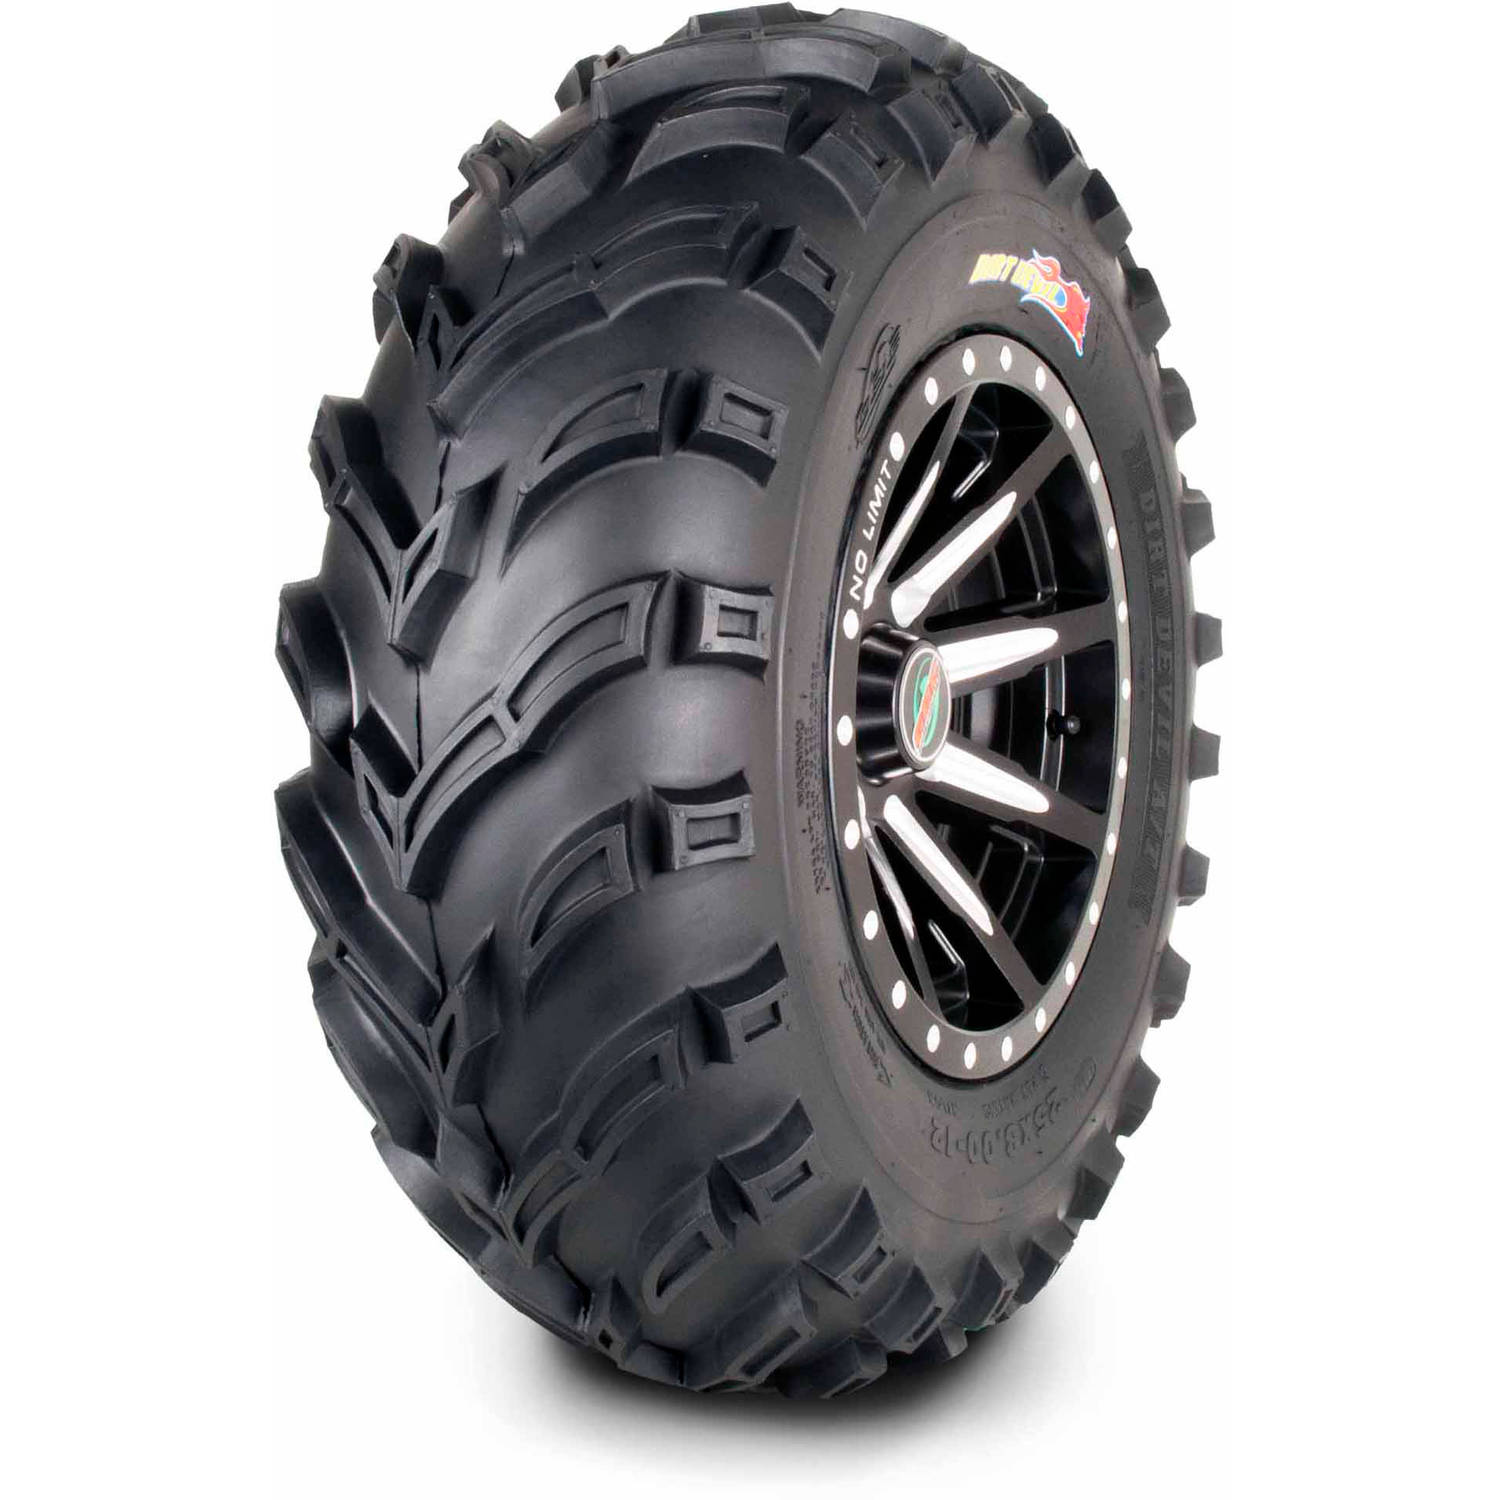 GBC Motorsports Dirt Devil 23X10.00-10 6 Ply ATV/UTV Tire (Tire Only)